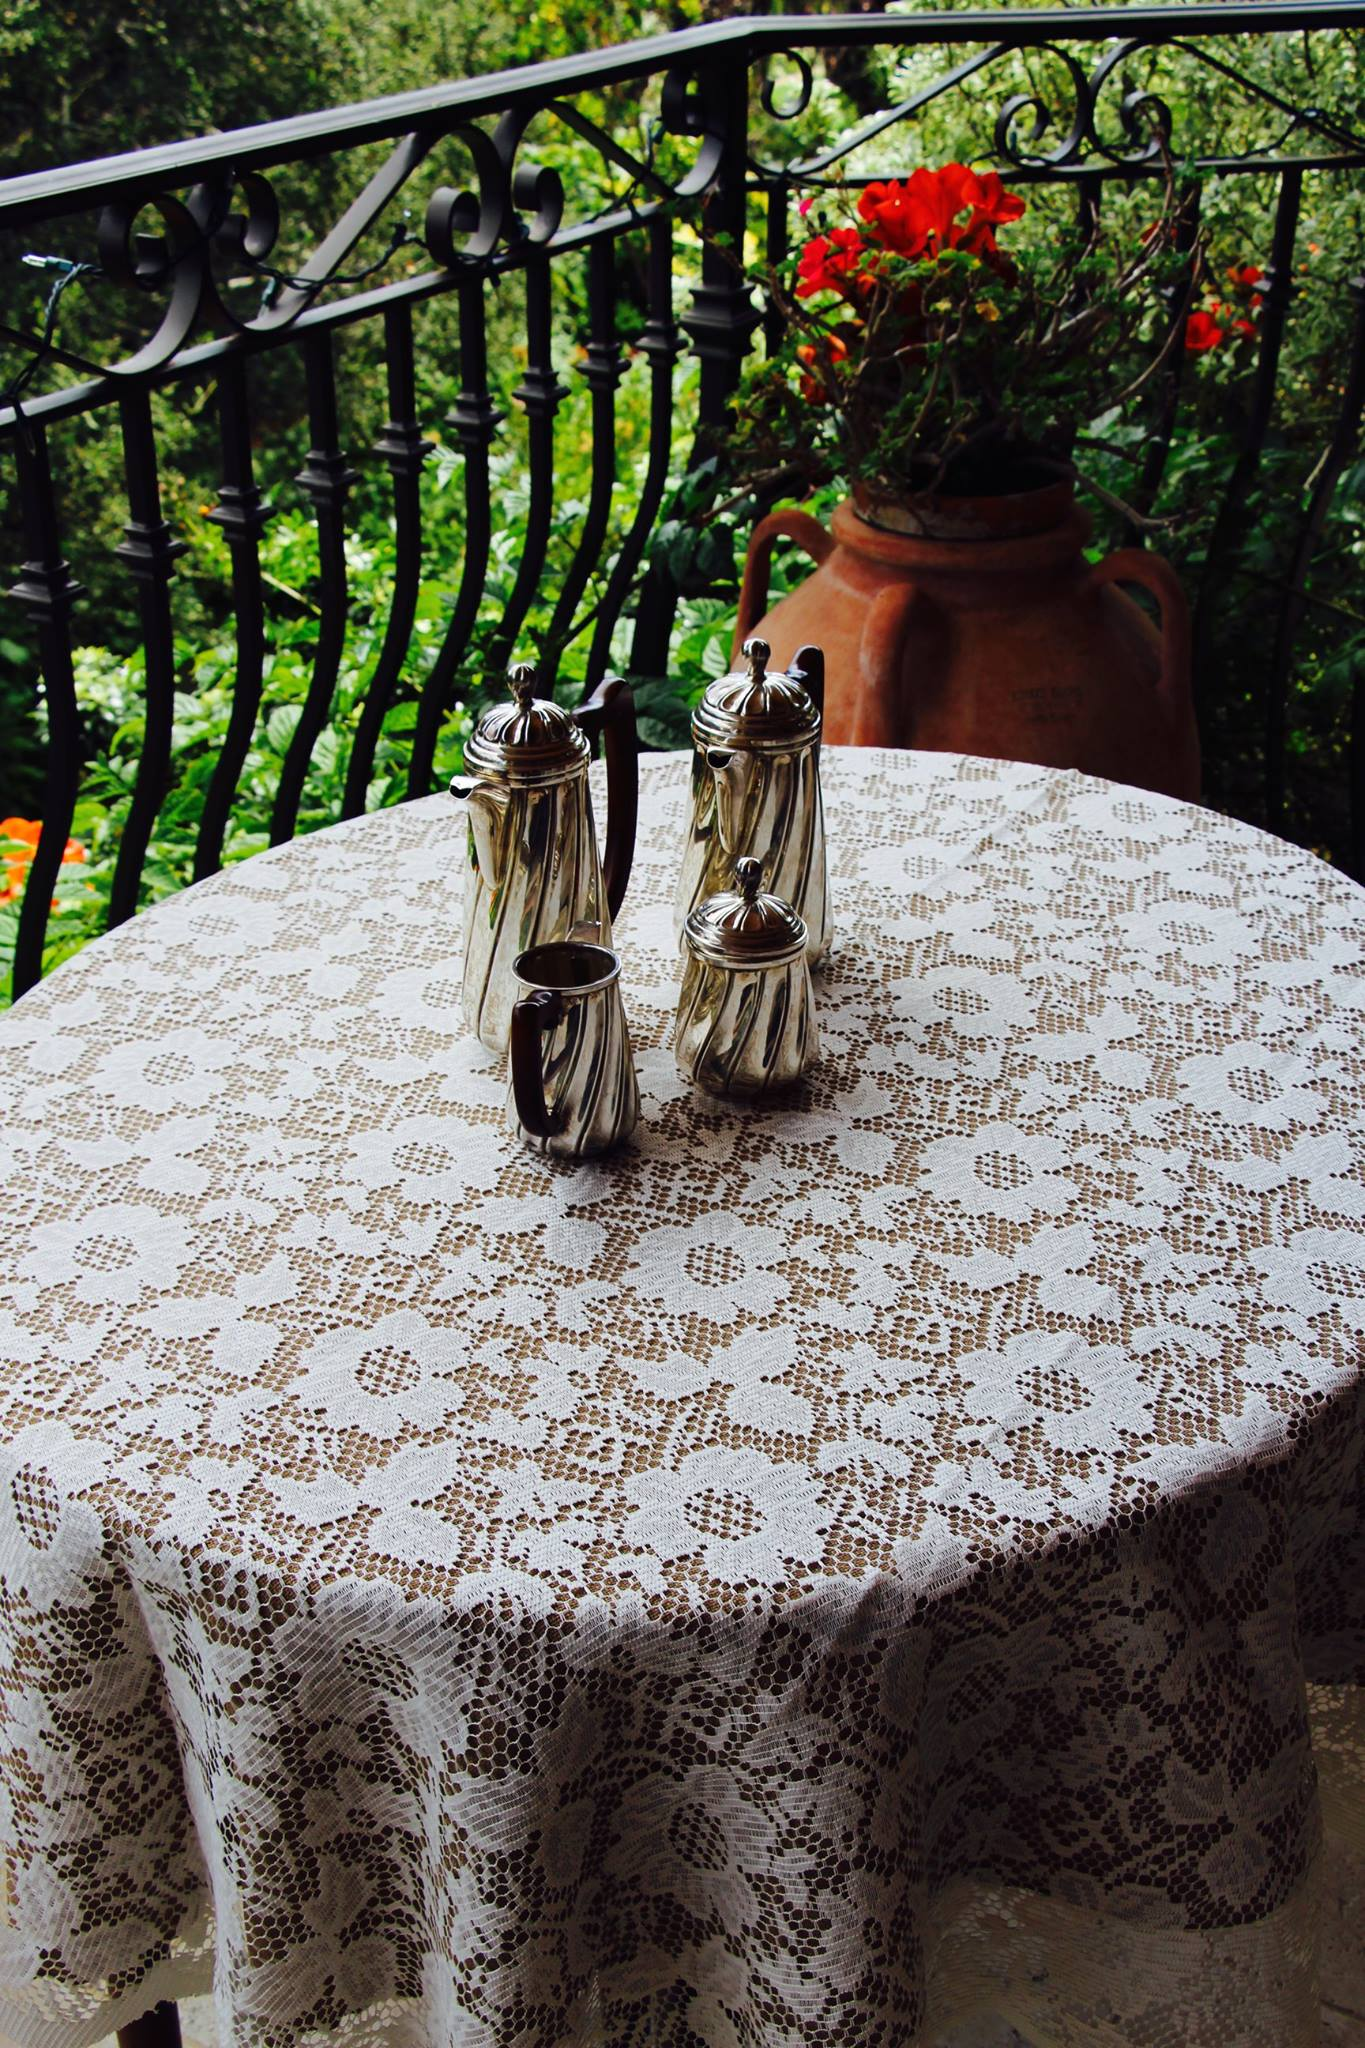 Lace Tablecloths Oval 300x300.jpg good havana faux burlap tablecloth and lace overlay with tablecloth for oval  dining table